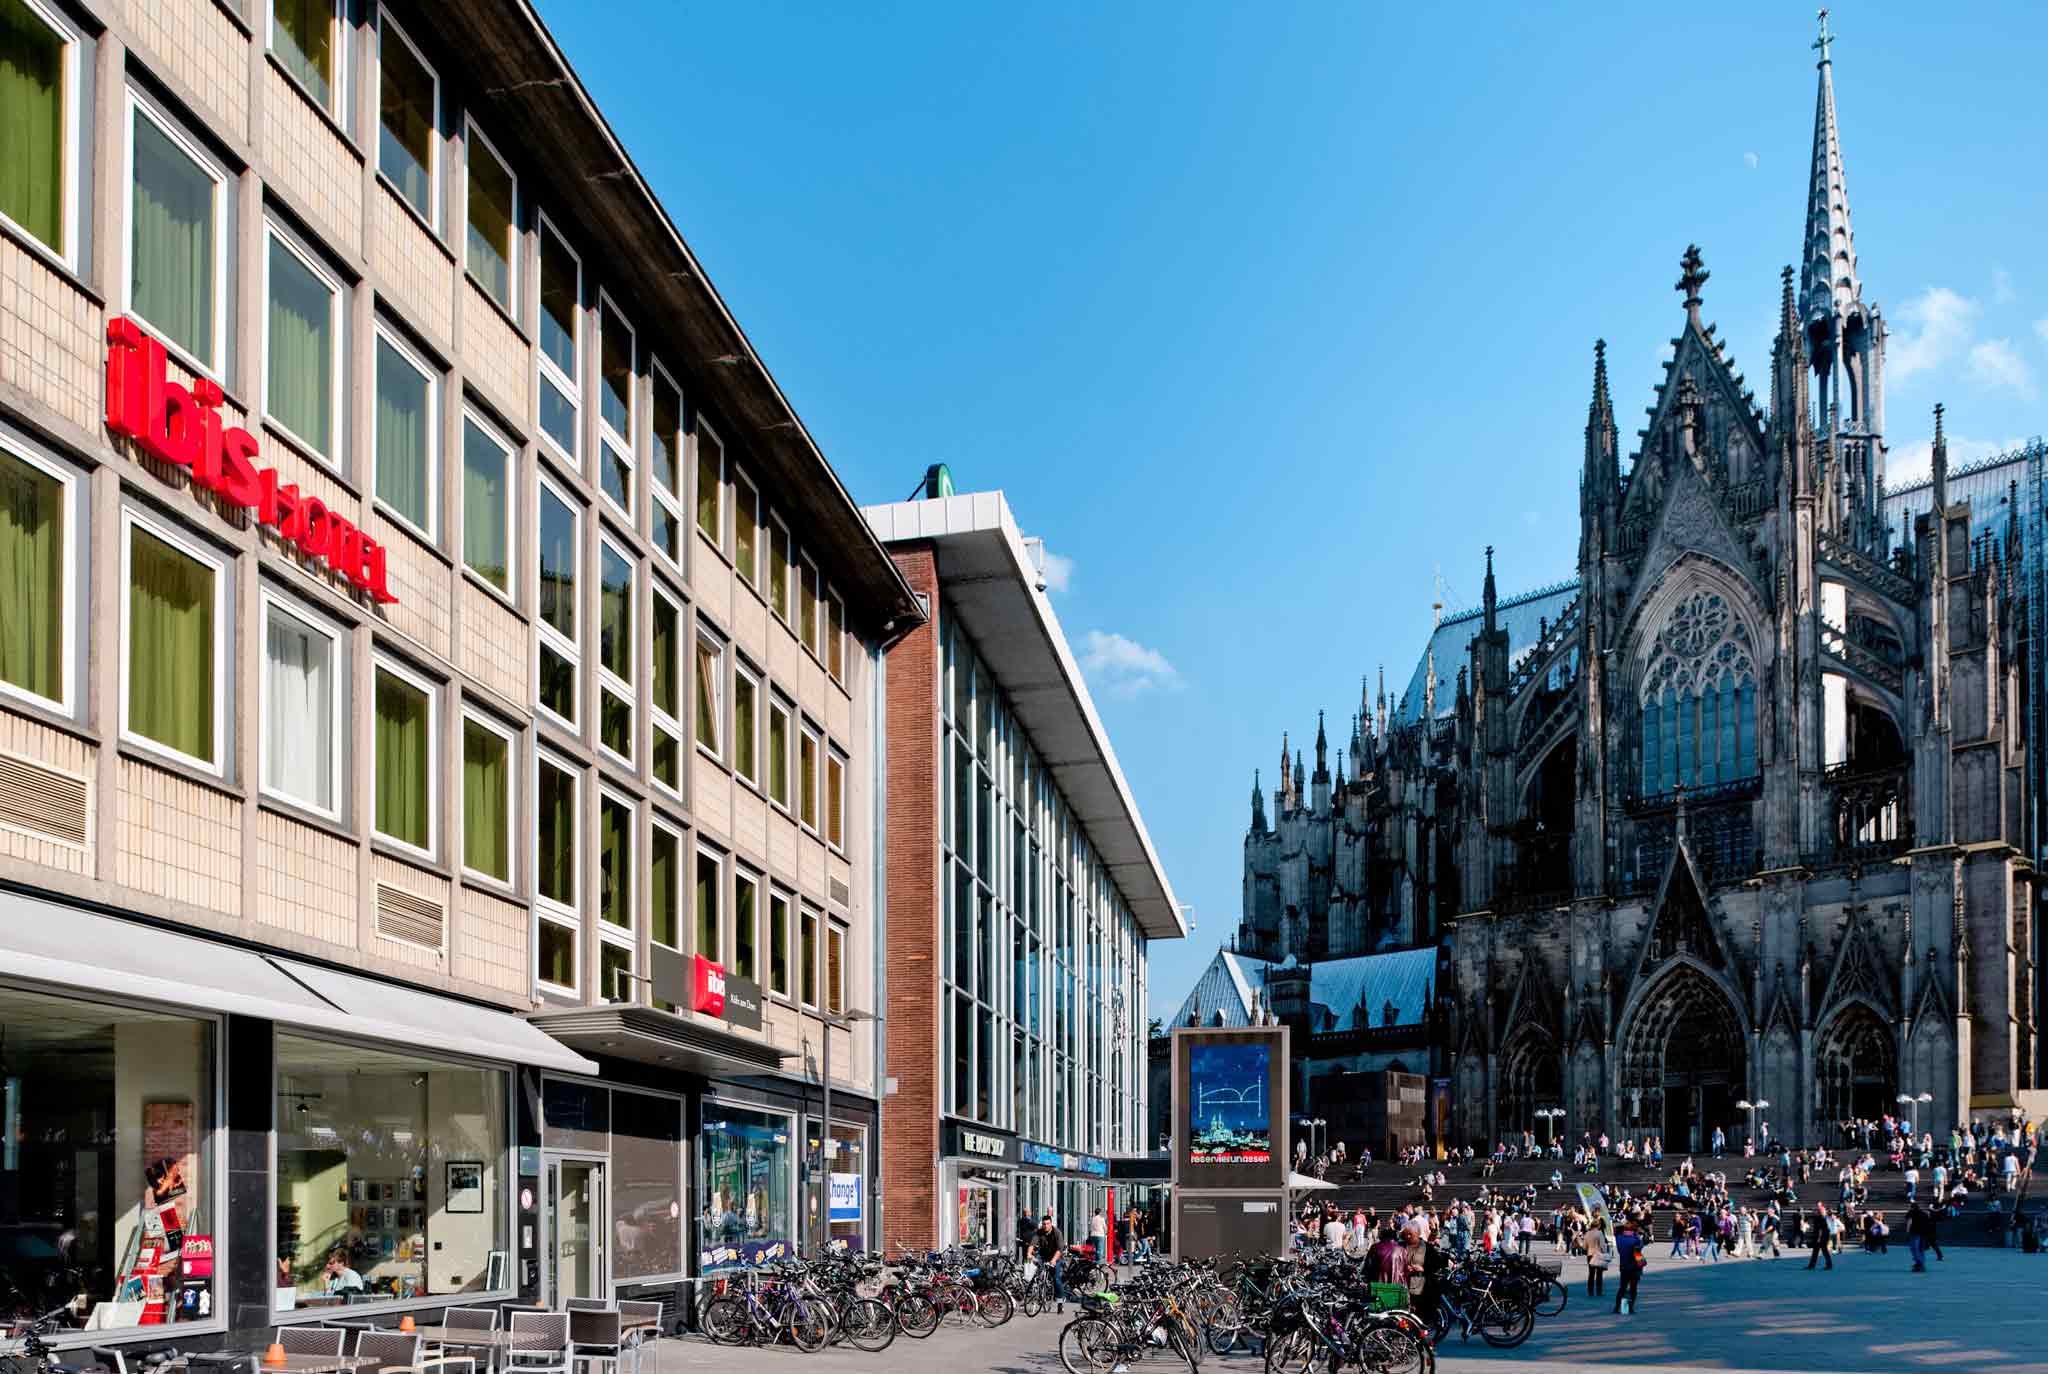 Hotels Koeln Hotel Near Cologne Cathedral 2018 World 39s Best Hotels